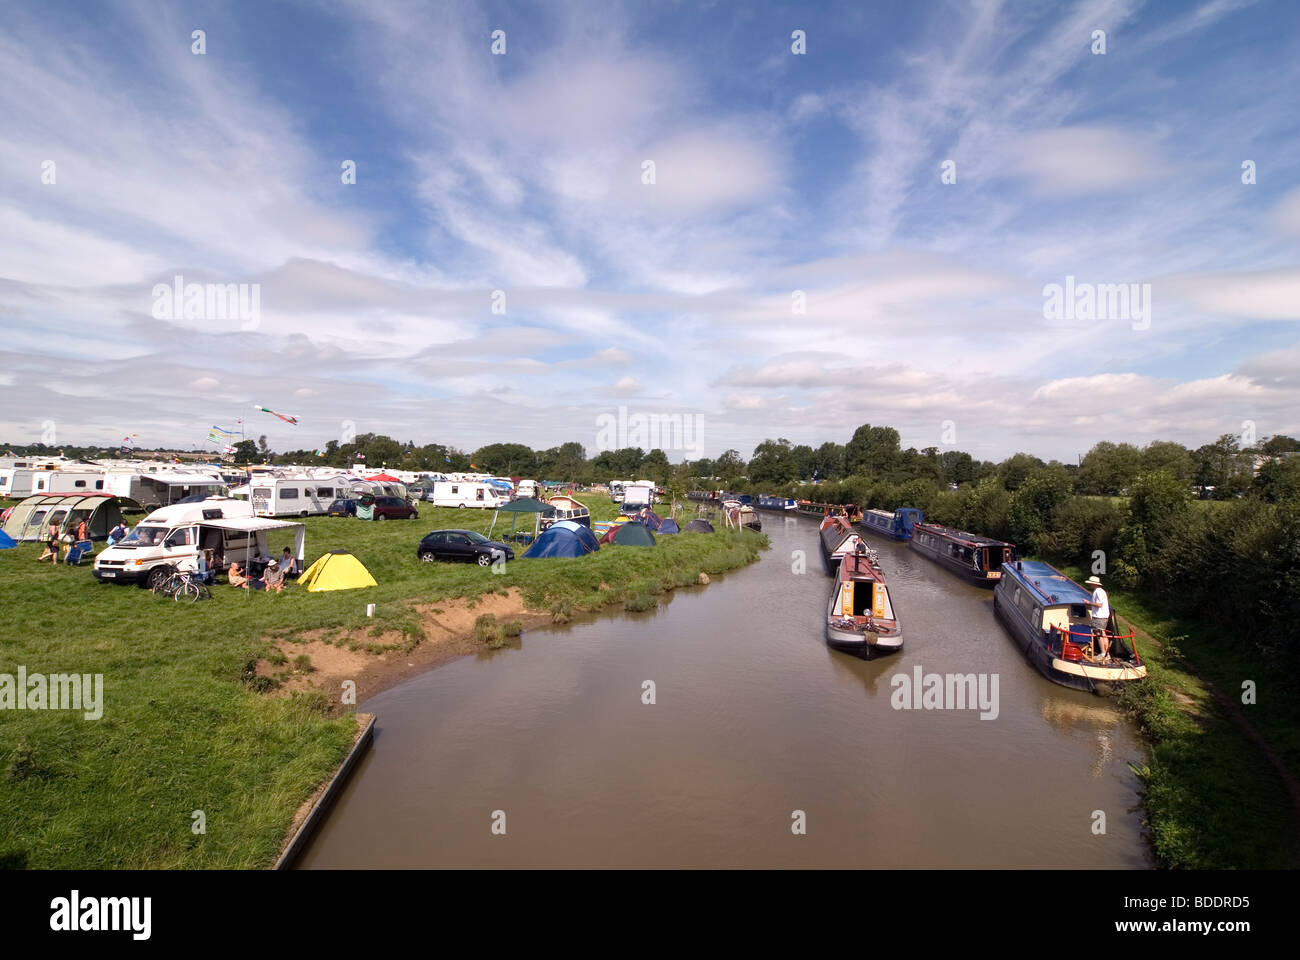 Fairport's Cropredy Convention friendly music festive near Banbury Oxfordshire on the south Oxford canalStock Photo